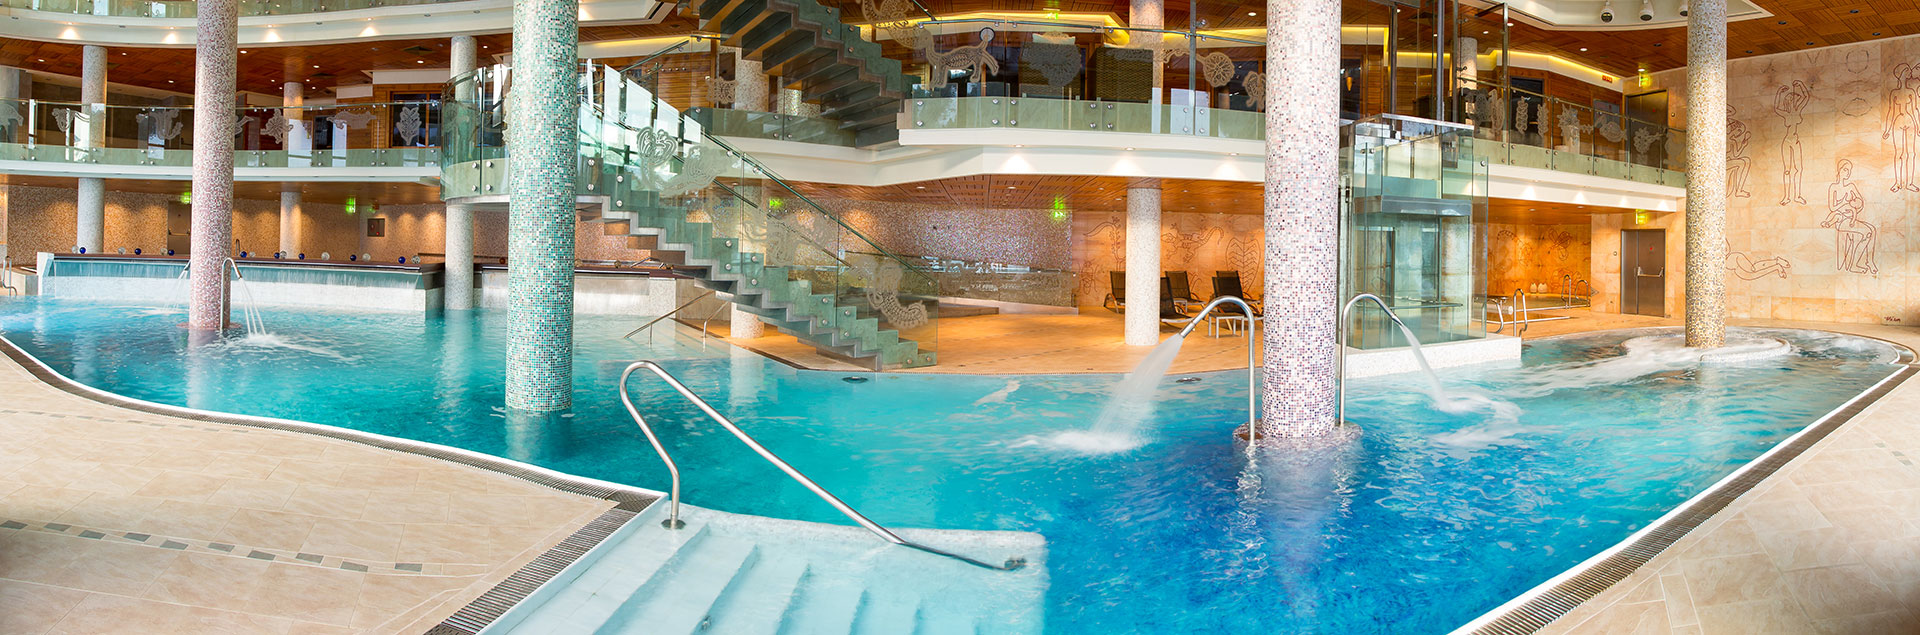 Circuito Wellness : Horarios sport wellness mountain spa sport hotels andorra